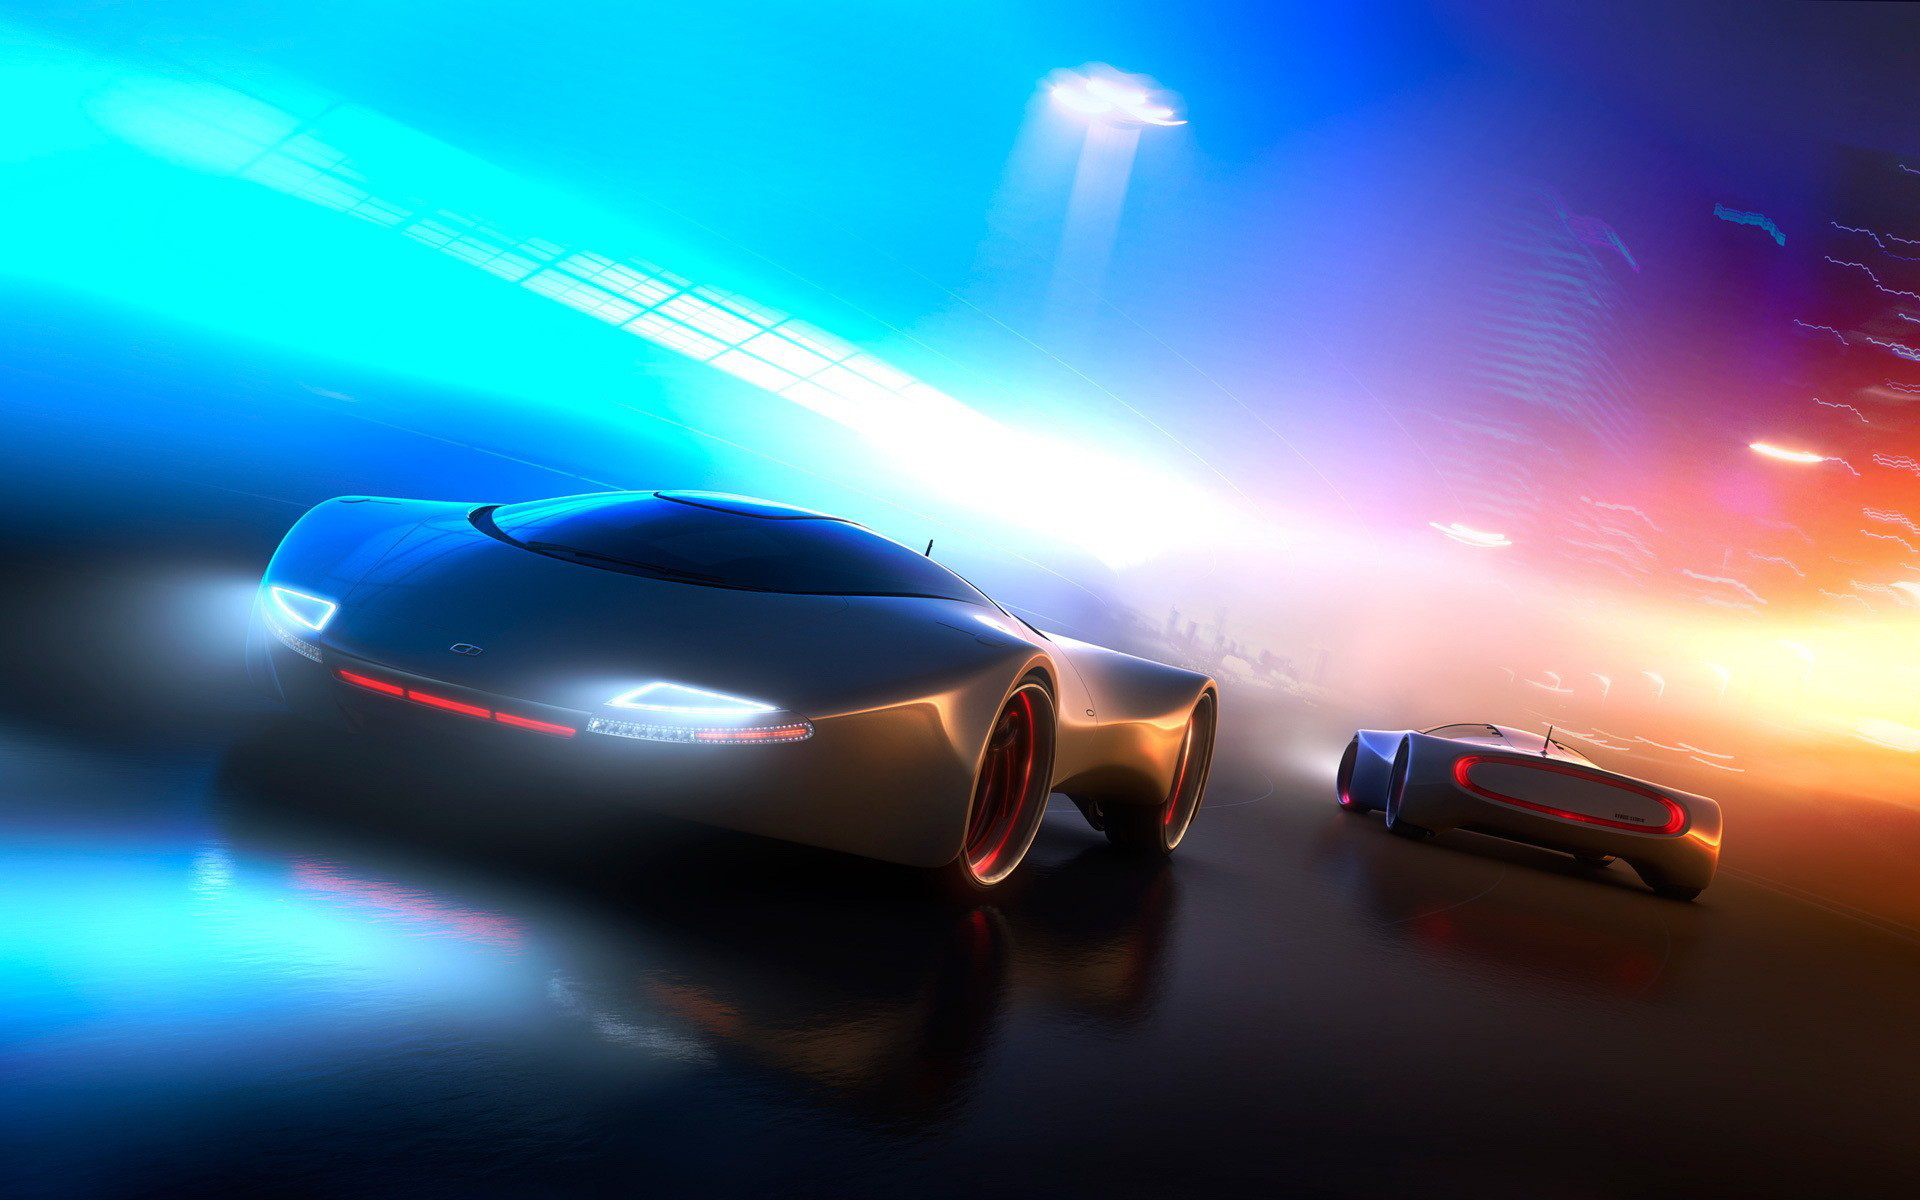 1920x1200 futuristic-concept-cars-in-rainbow-colors-.